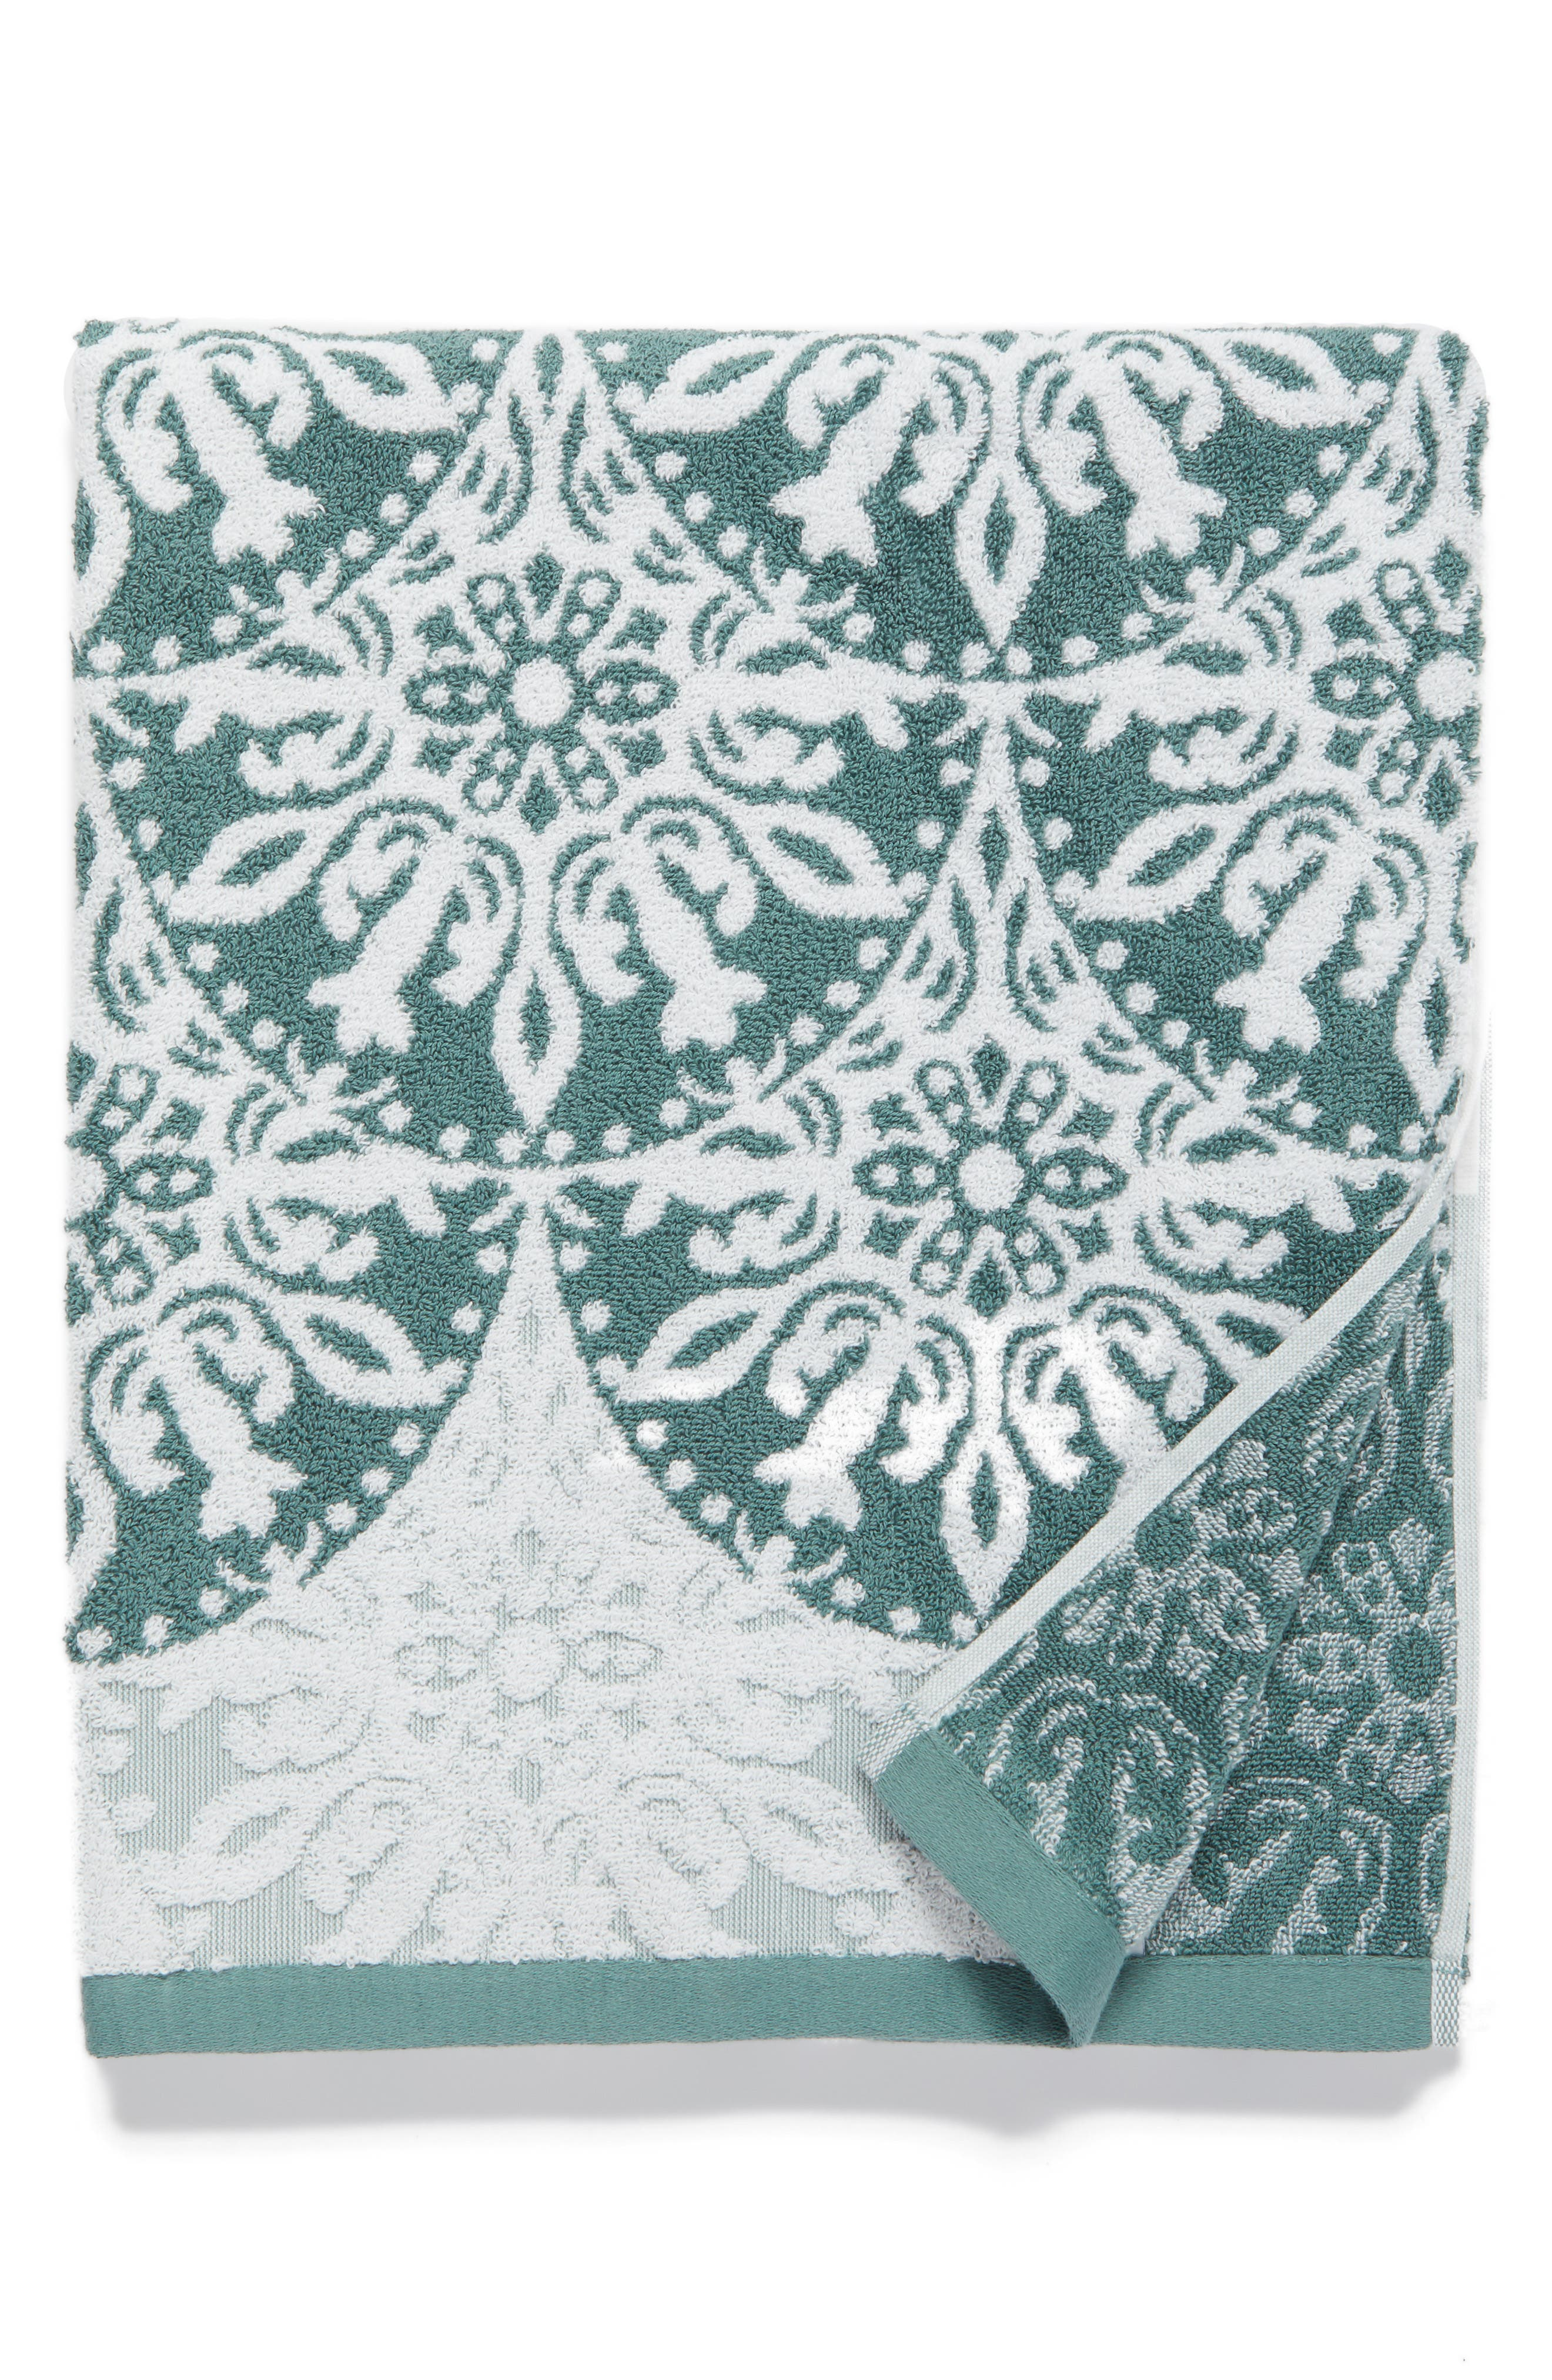 Nordstrom at Home Fan Ombré Jacquard Bath Towel (2 for $49)